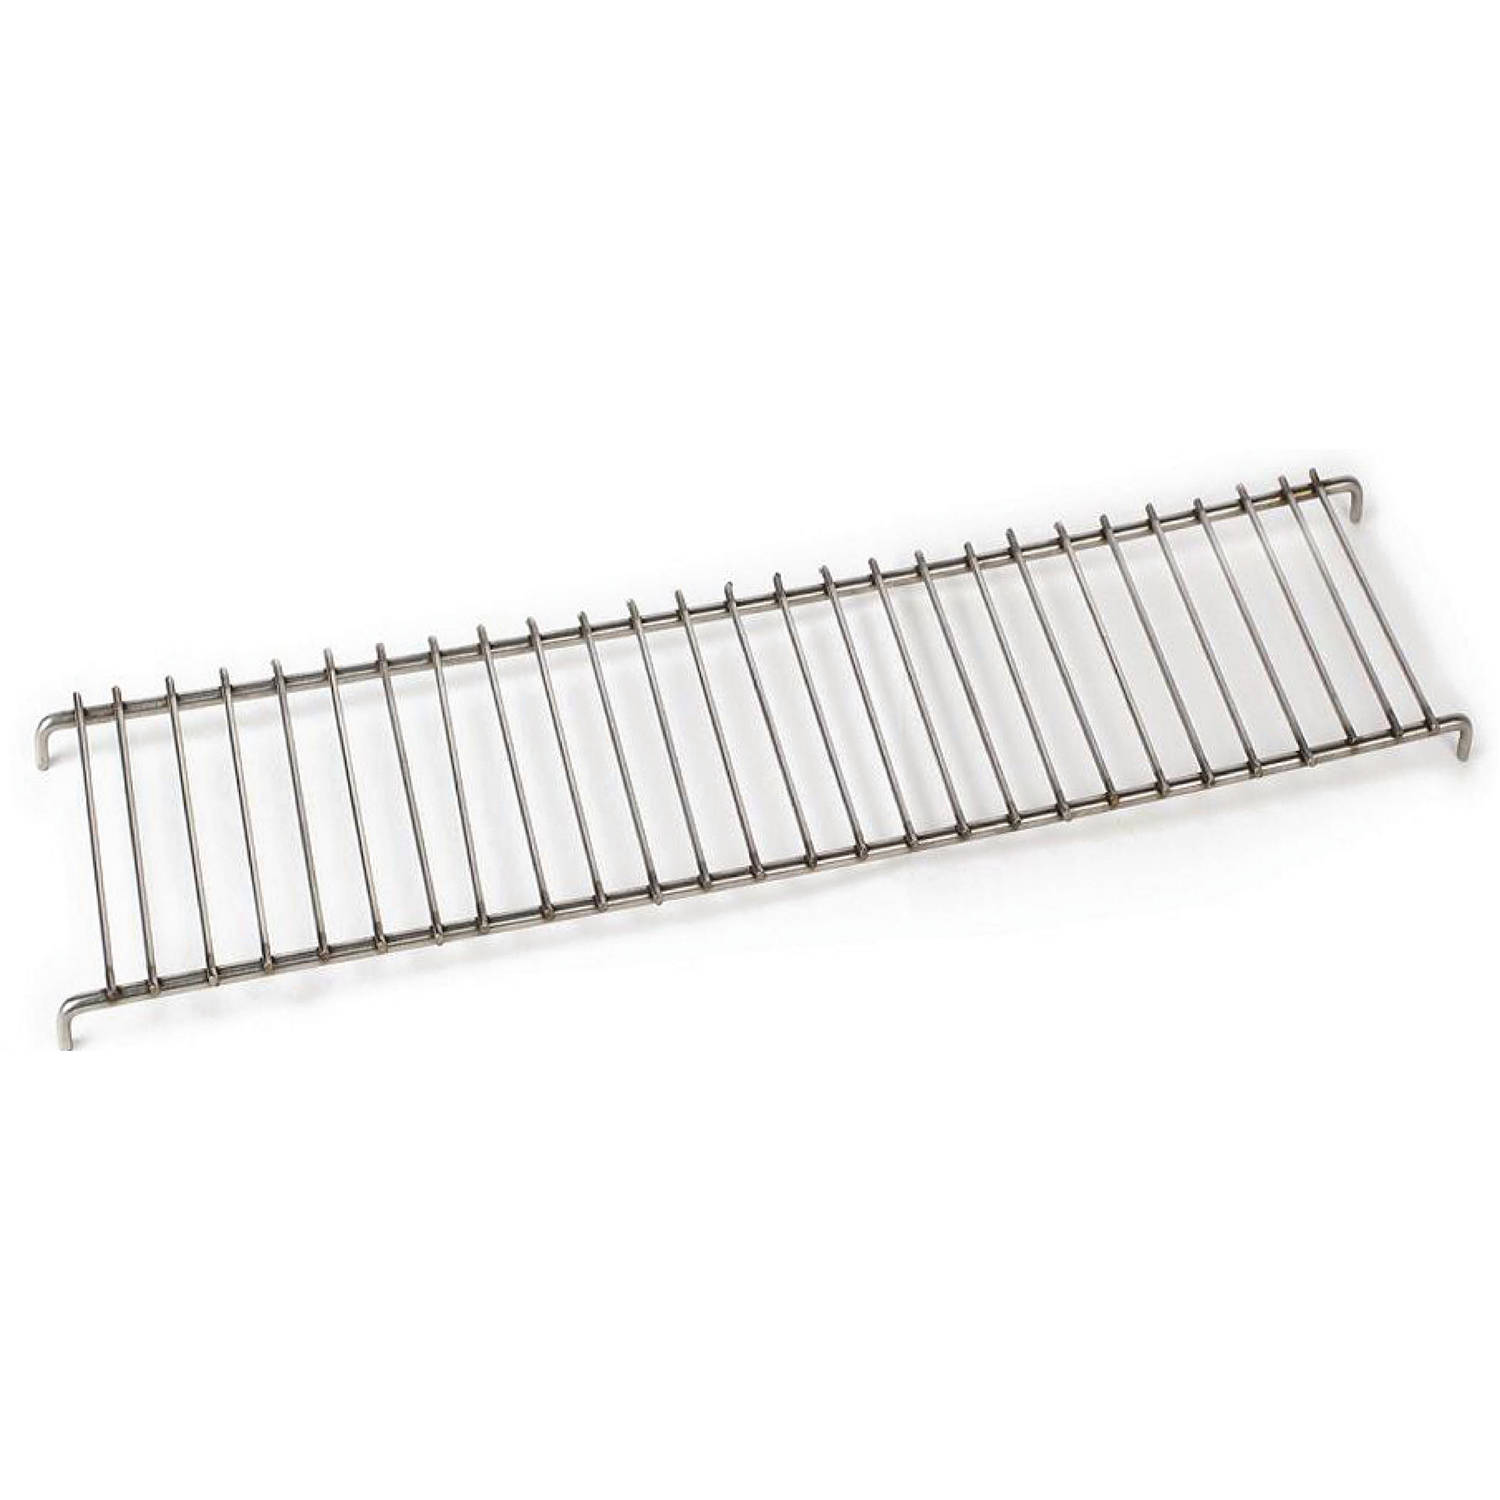 Kuuma Warming Rack For Elite 216 Gas Grill by Camco